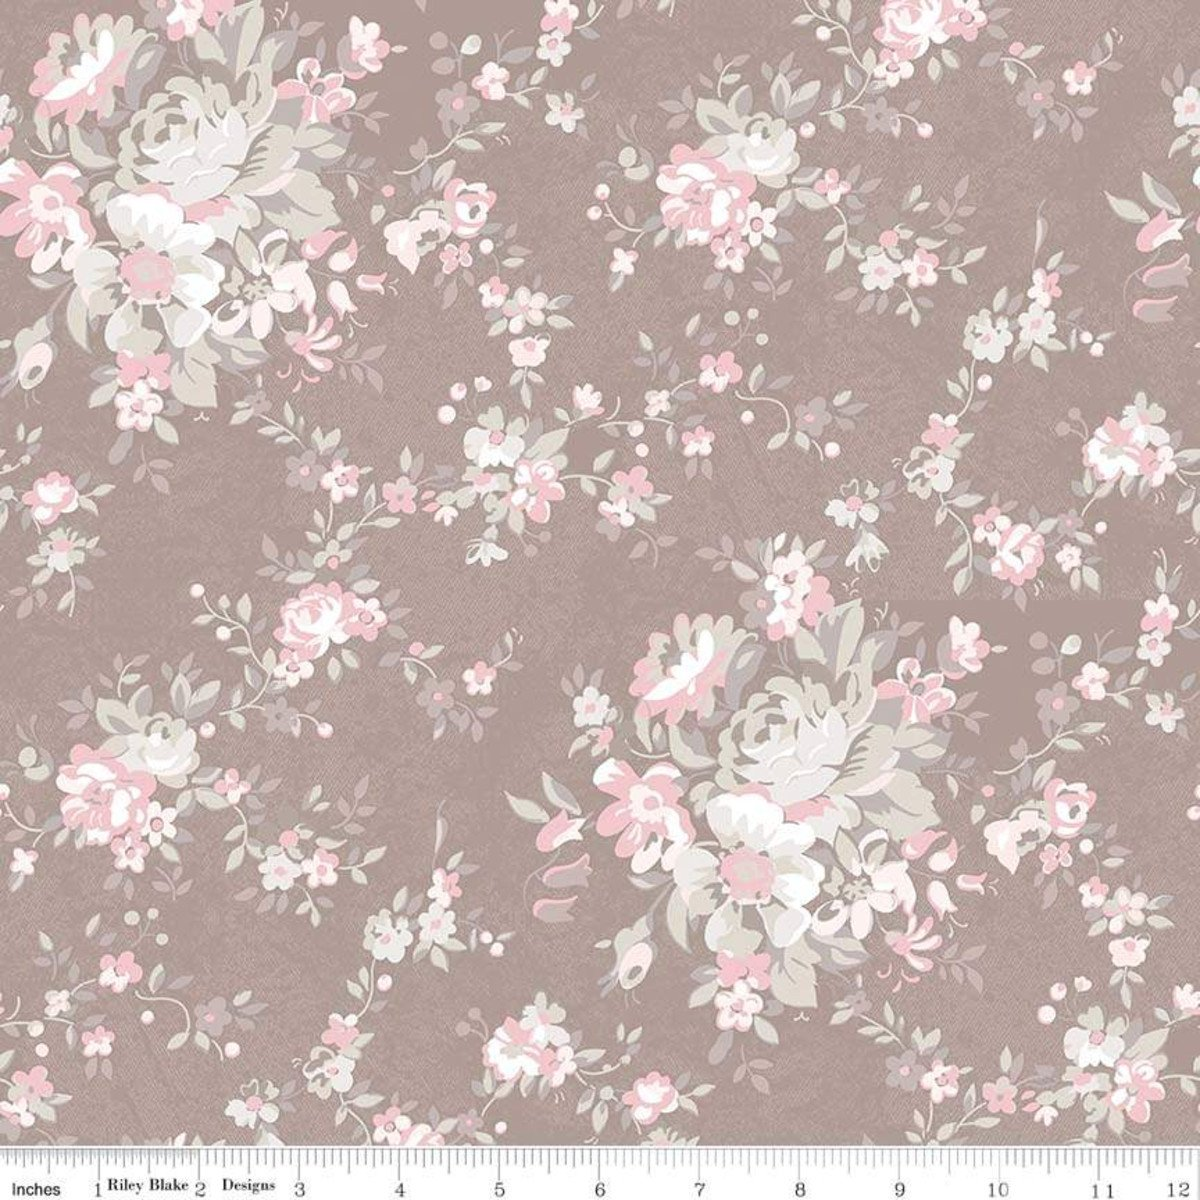 C7680-TAUPE_Main Floral Rose Garden